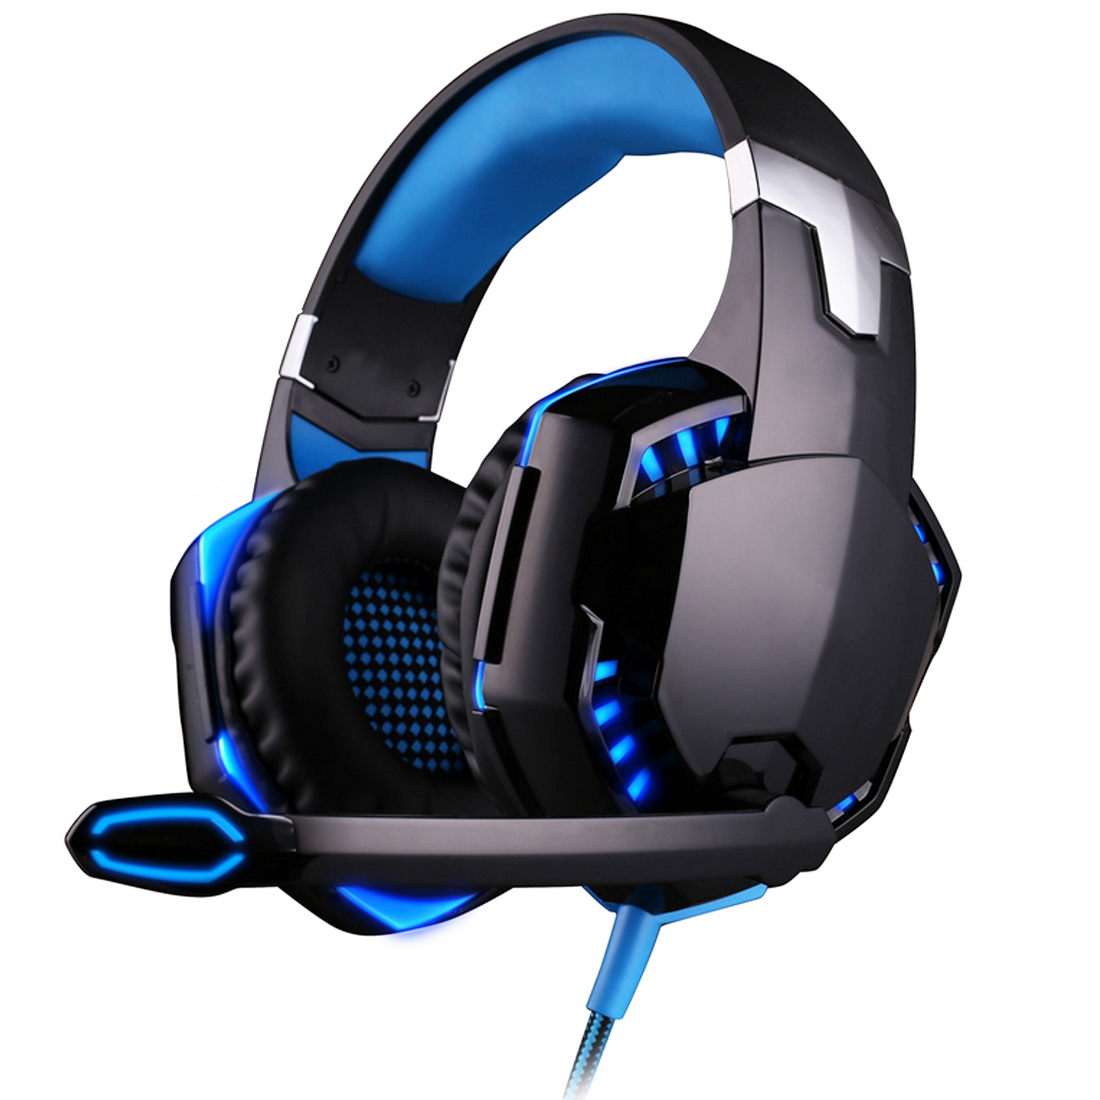 Marsnaska Brand Wire Gaming Headphone Gaming Headset Over Ear casque gamer Game Headphone With Microphone Mic LED light for PC high quality gaming headset with microphone stereo super bass headphones for gamer pc computer over head cool wire headphone